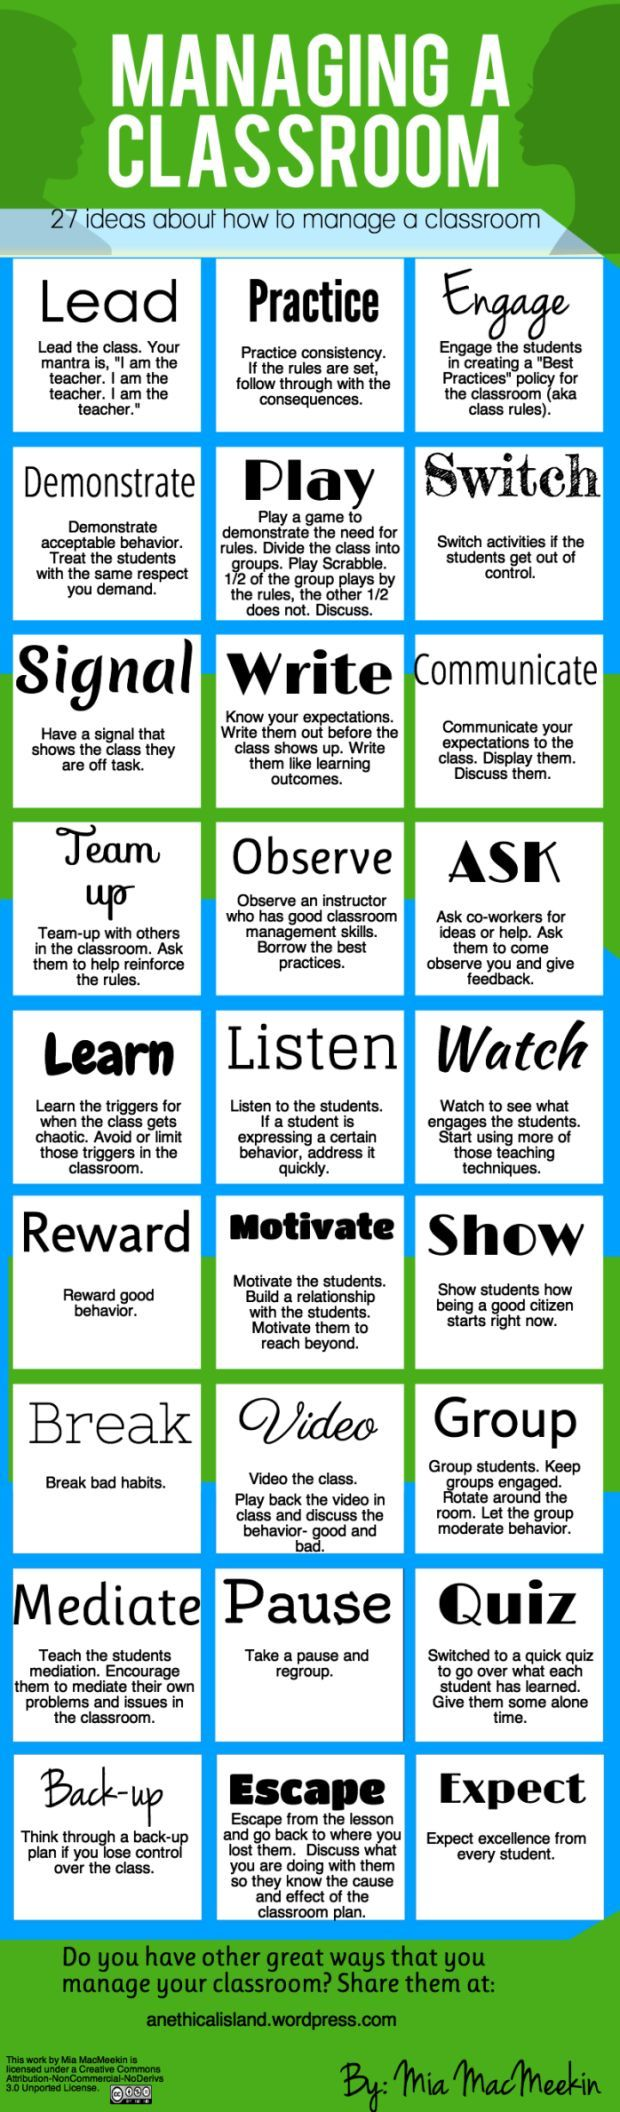 Classroom Management Ideas For Substitutes ~ Classroom management tips for high school substitute